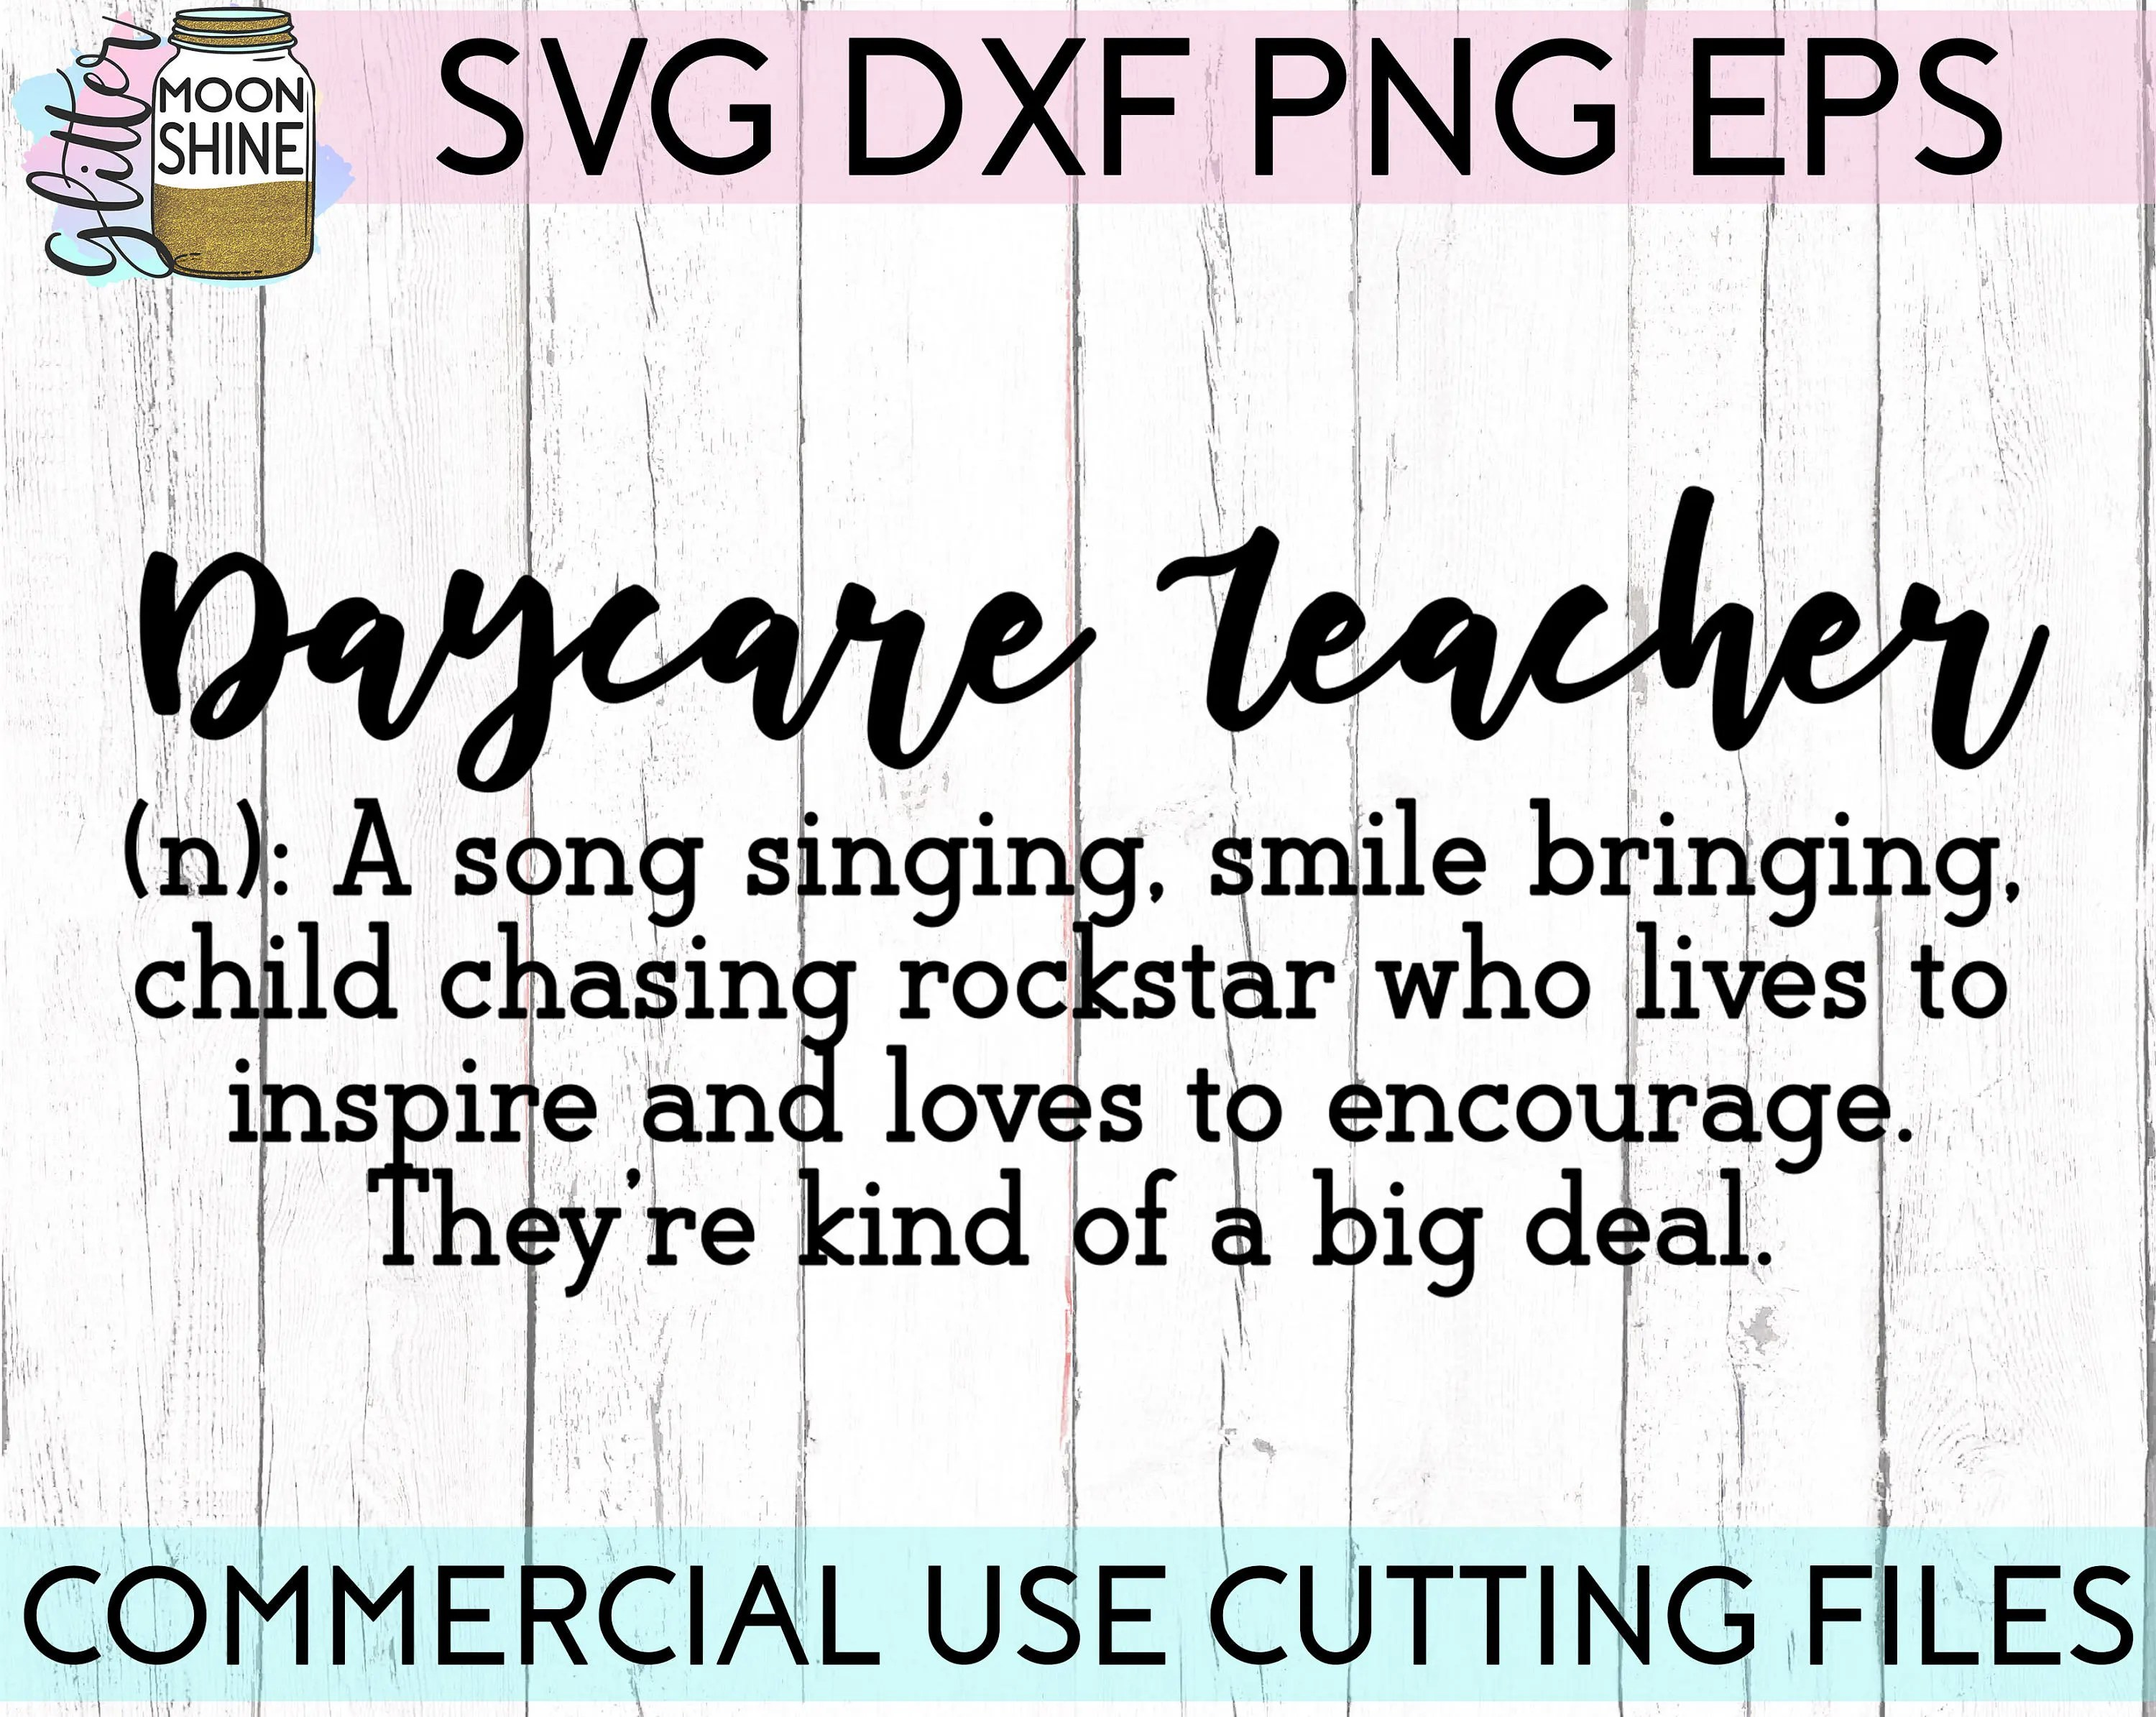 Daycare Teacher Definition svg eps dxf png cutting files ...